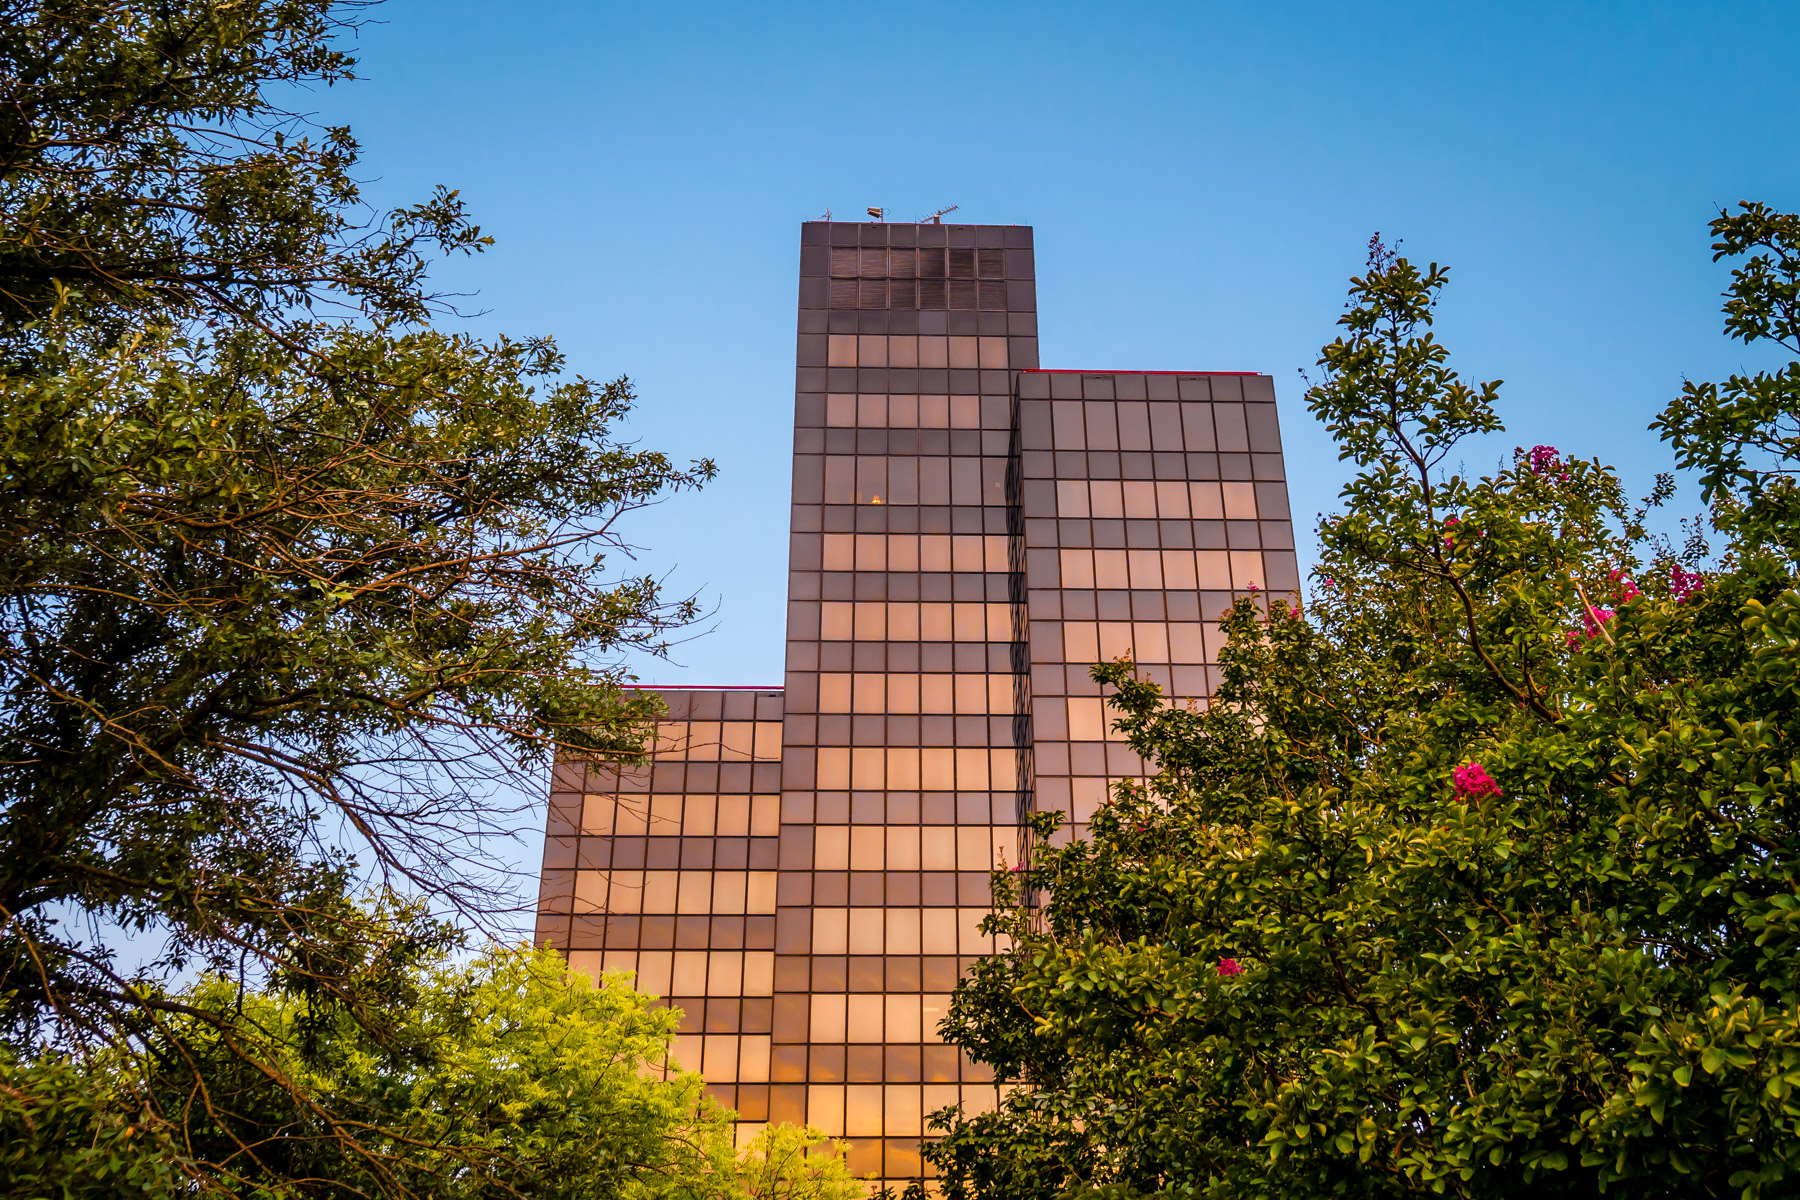 Tyler, Texas' Plaza Tower catches the morning sun as the city awakens on a warm summer day.